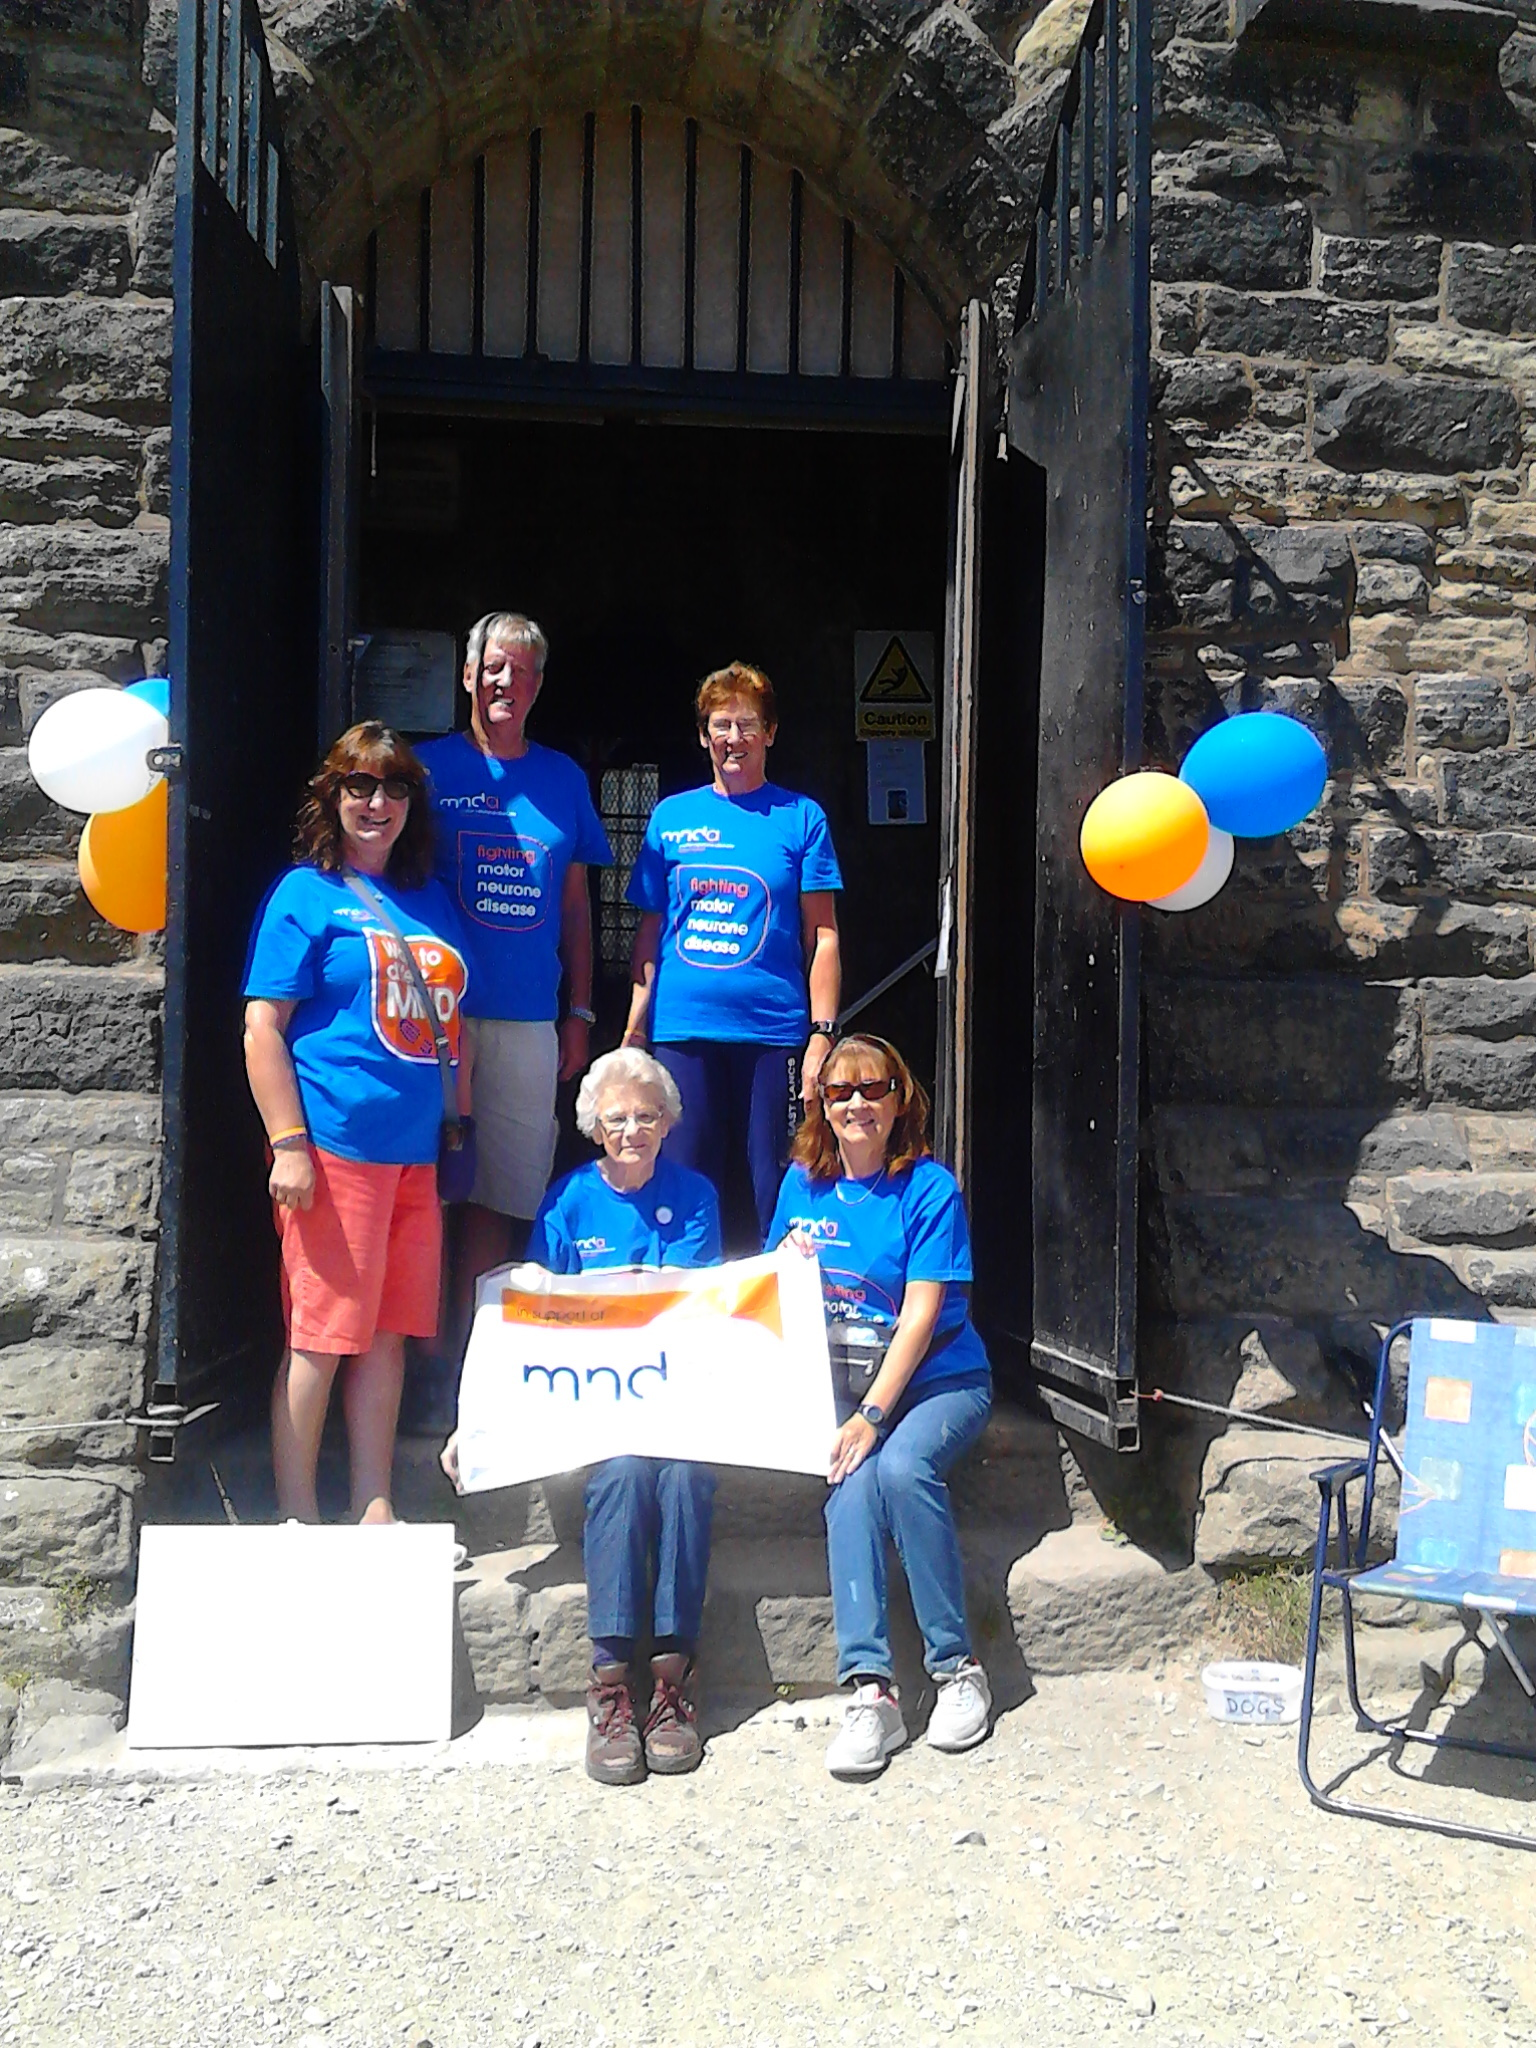 FUNDRAISING: Christine Lee, Phil Brown, Vivien Lee, Barbara Shelton and Motor Neurone Disease Association volunteer Barbara Tew